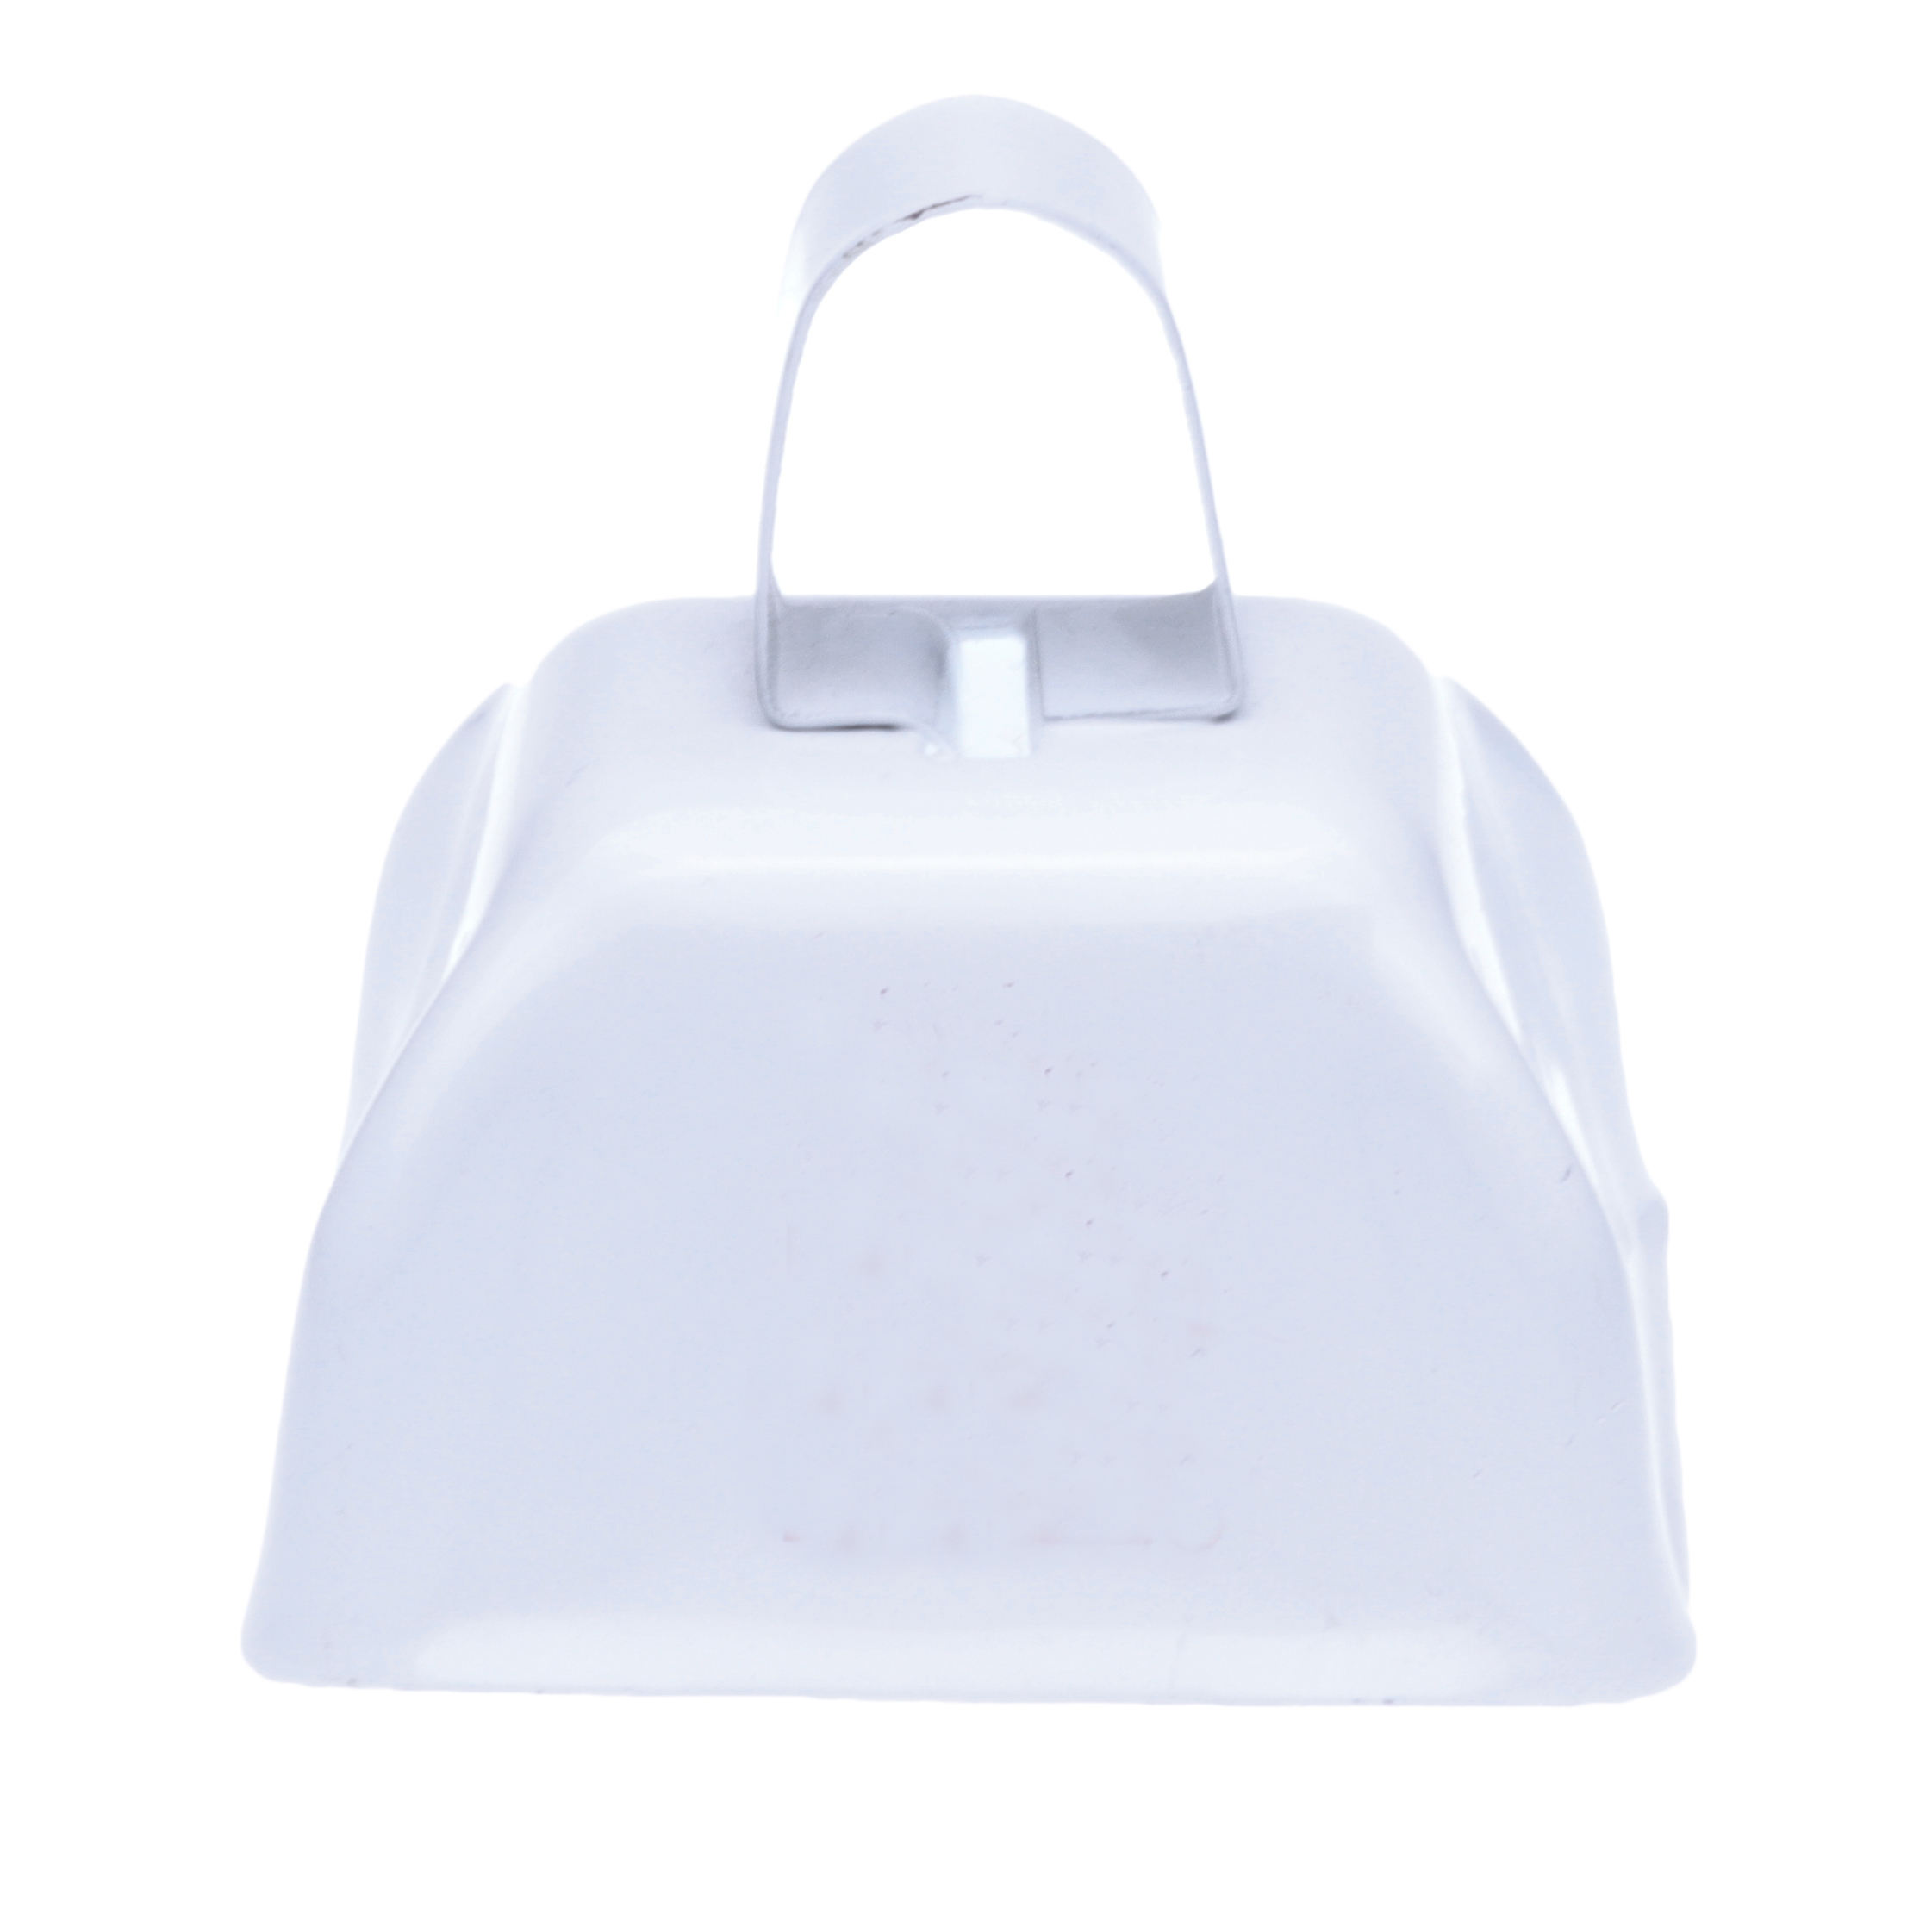 Unionpromo customized metal cowbell in different colors and shapes